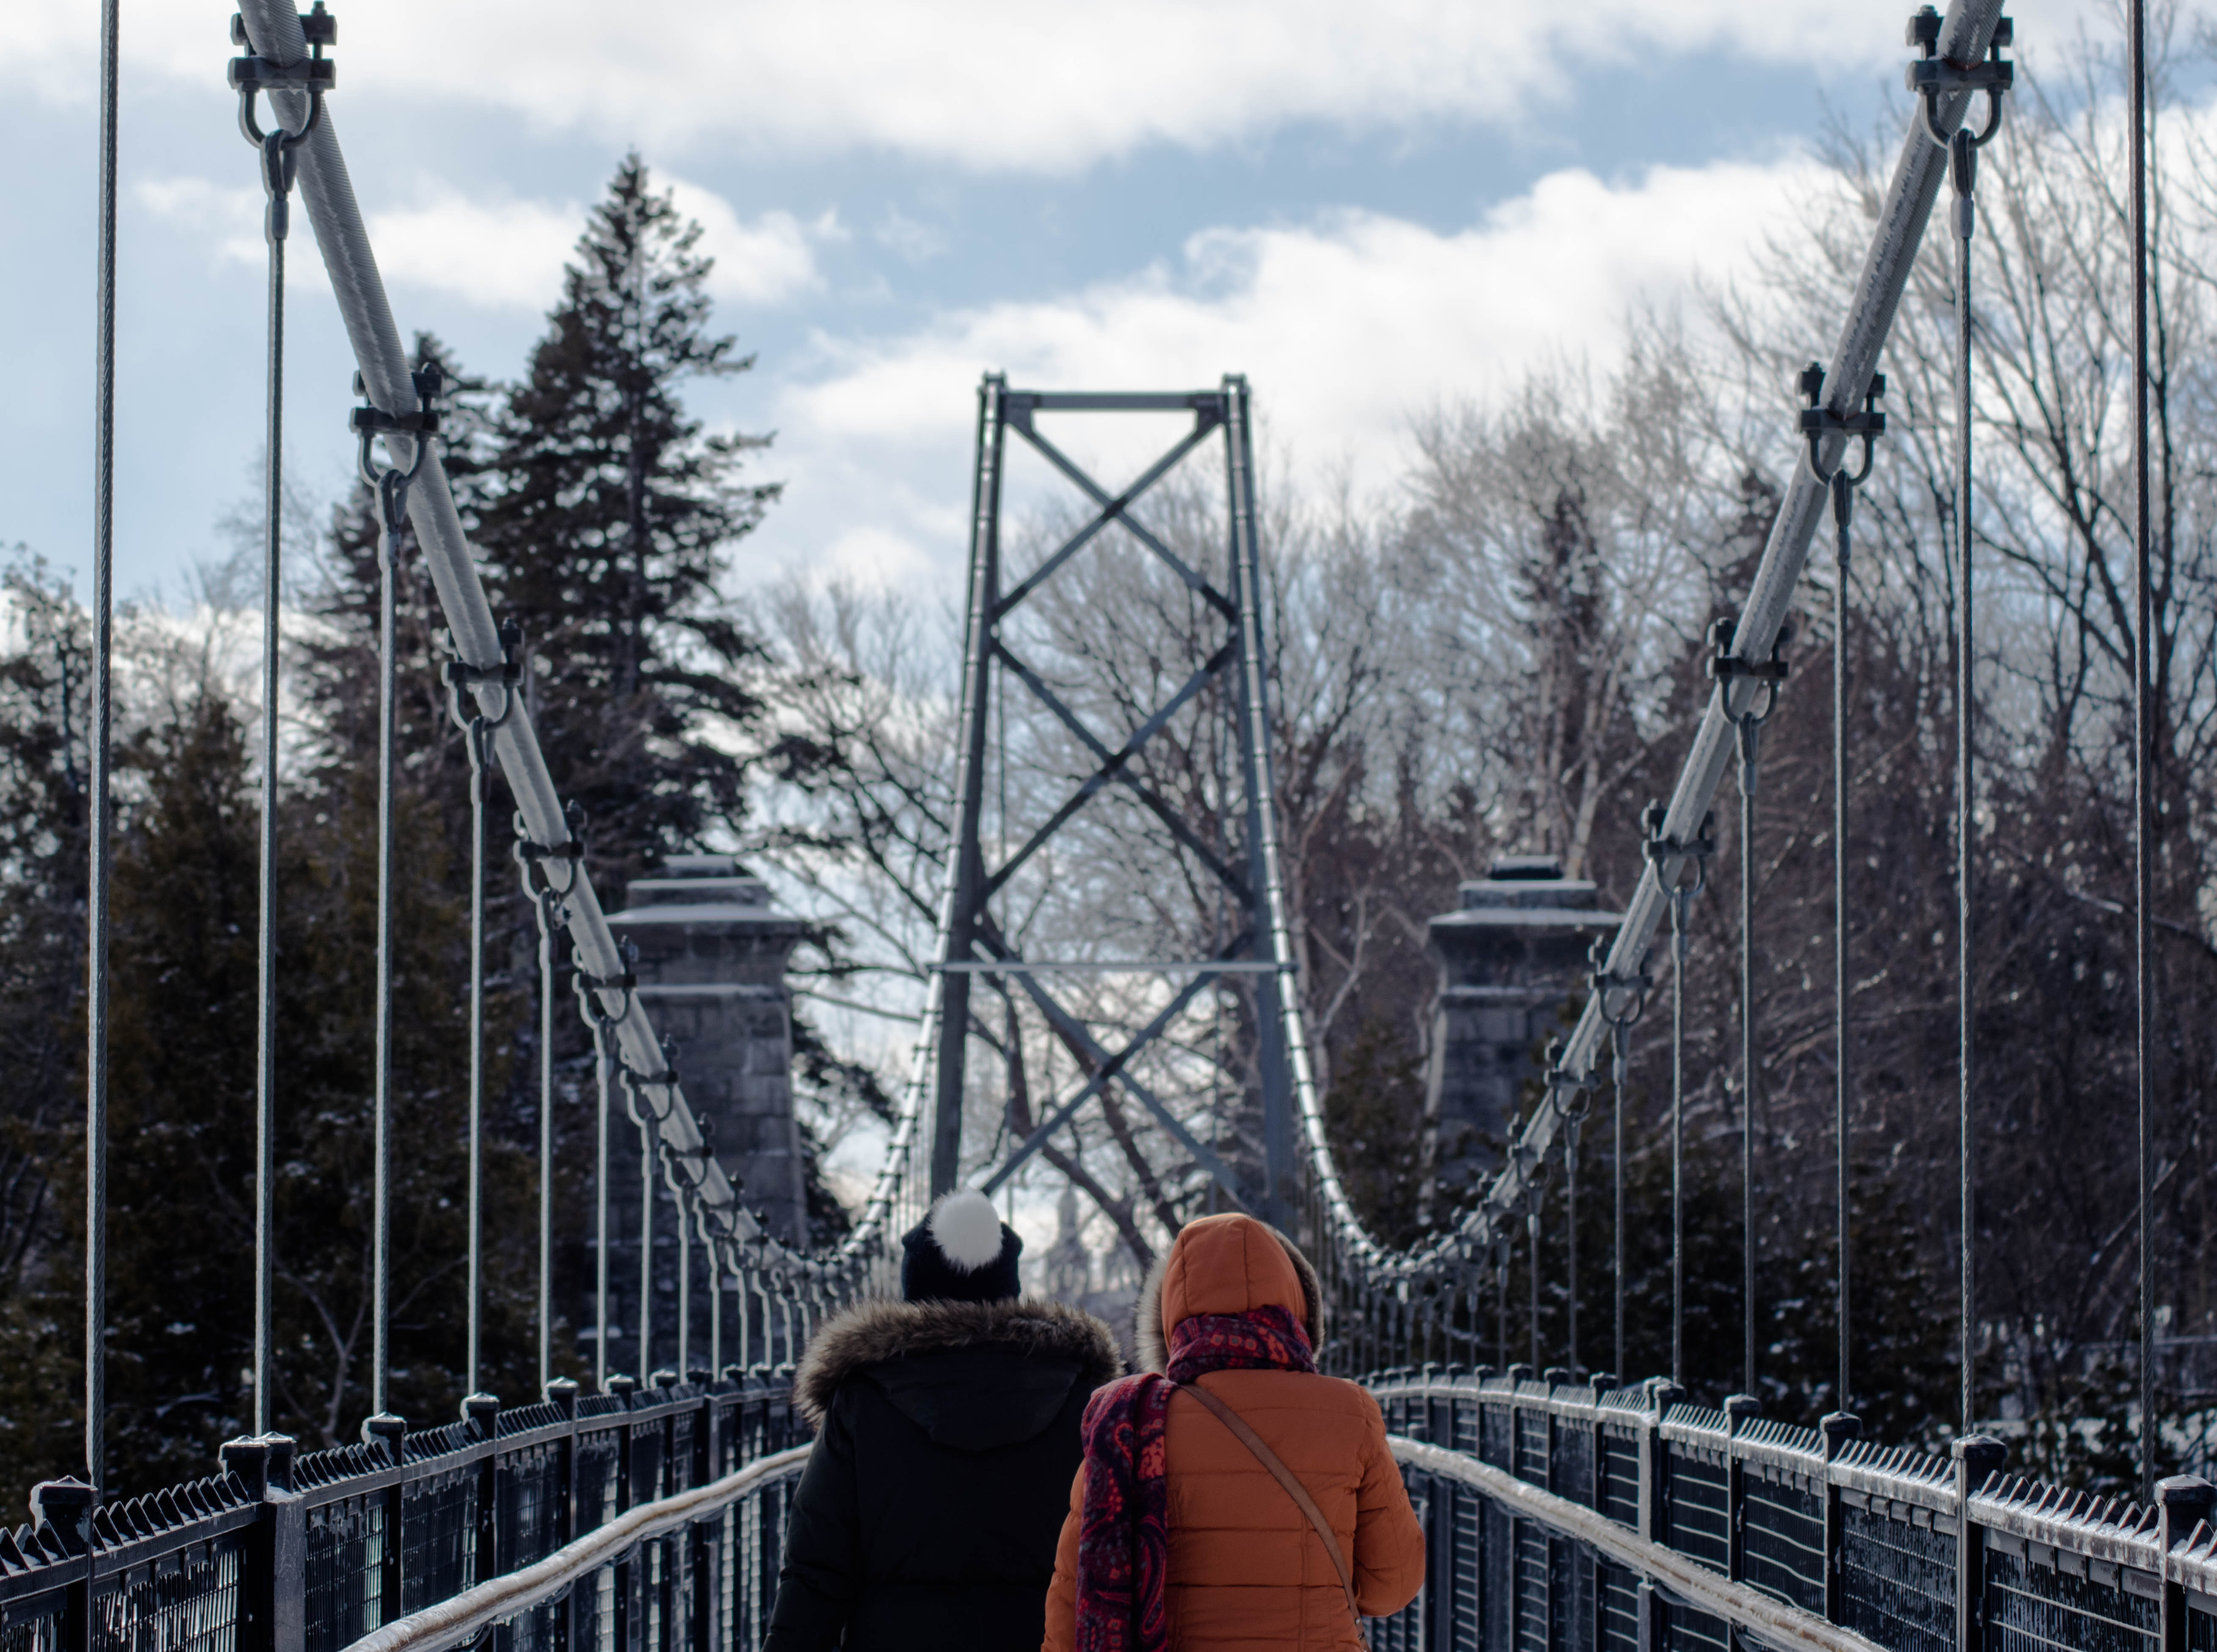 two persons walking on gray suspension bridge in between trees at daytime